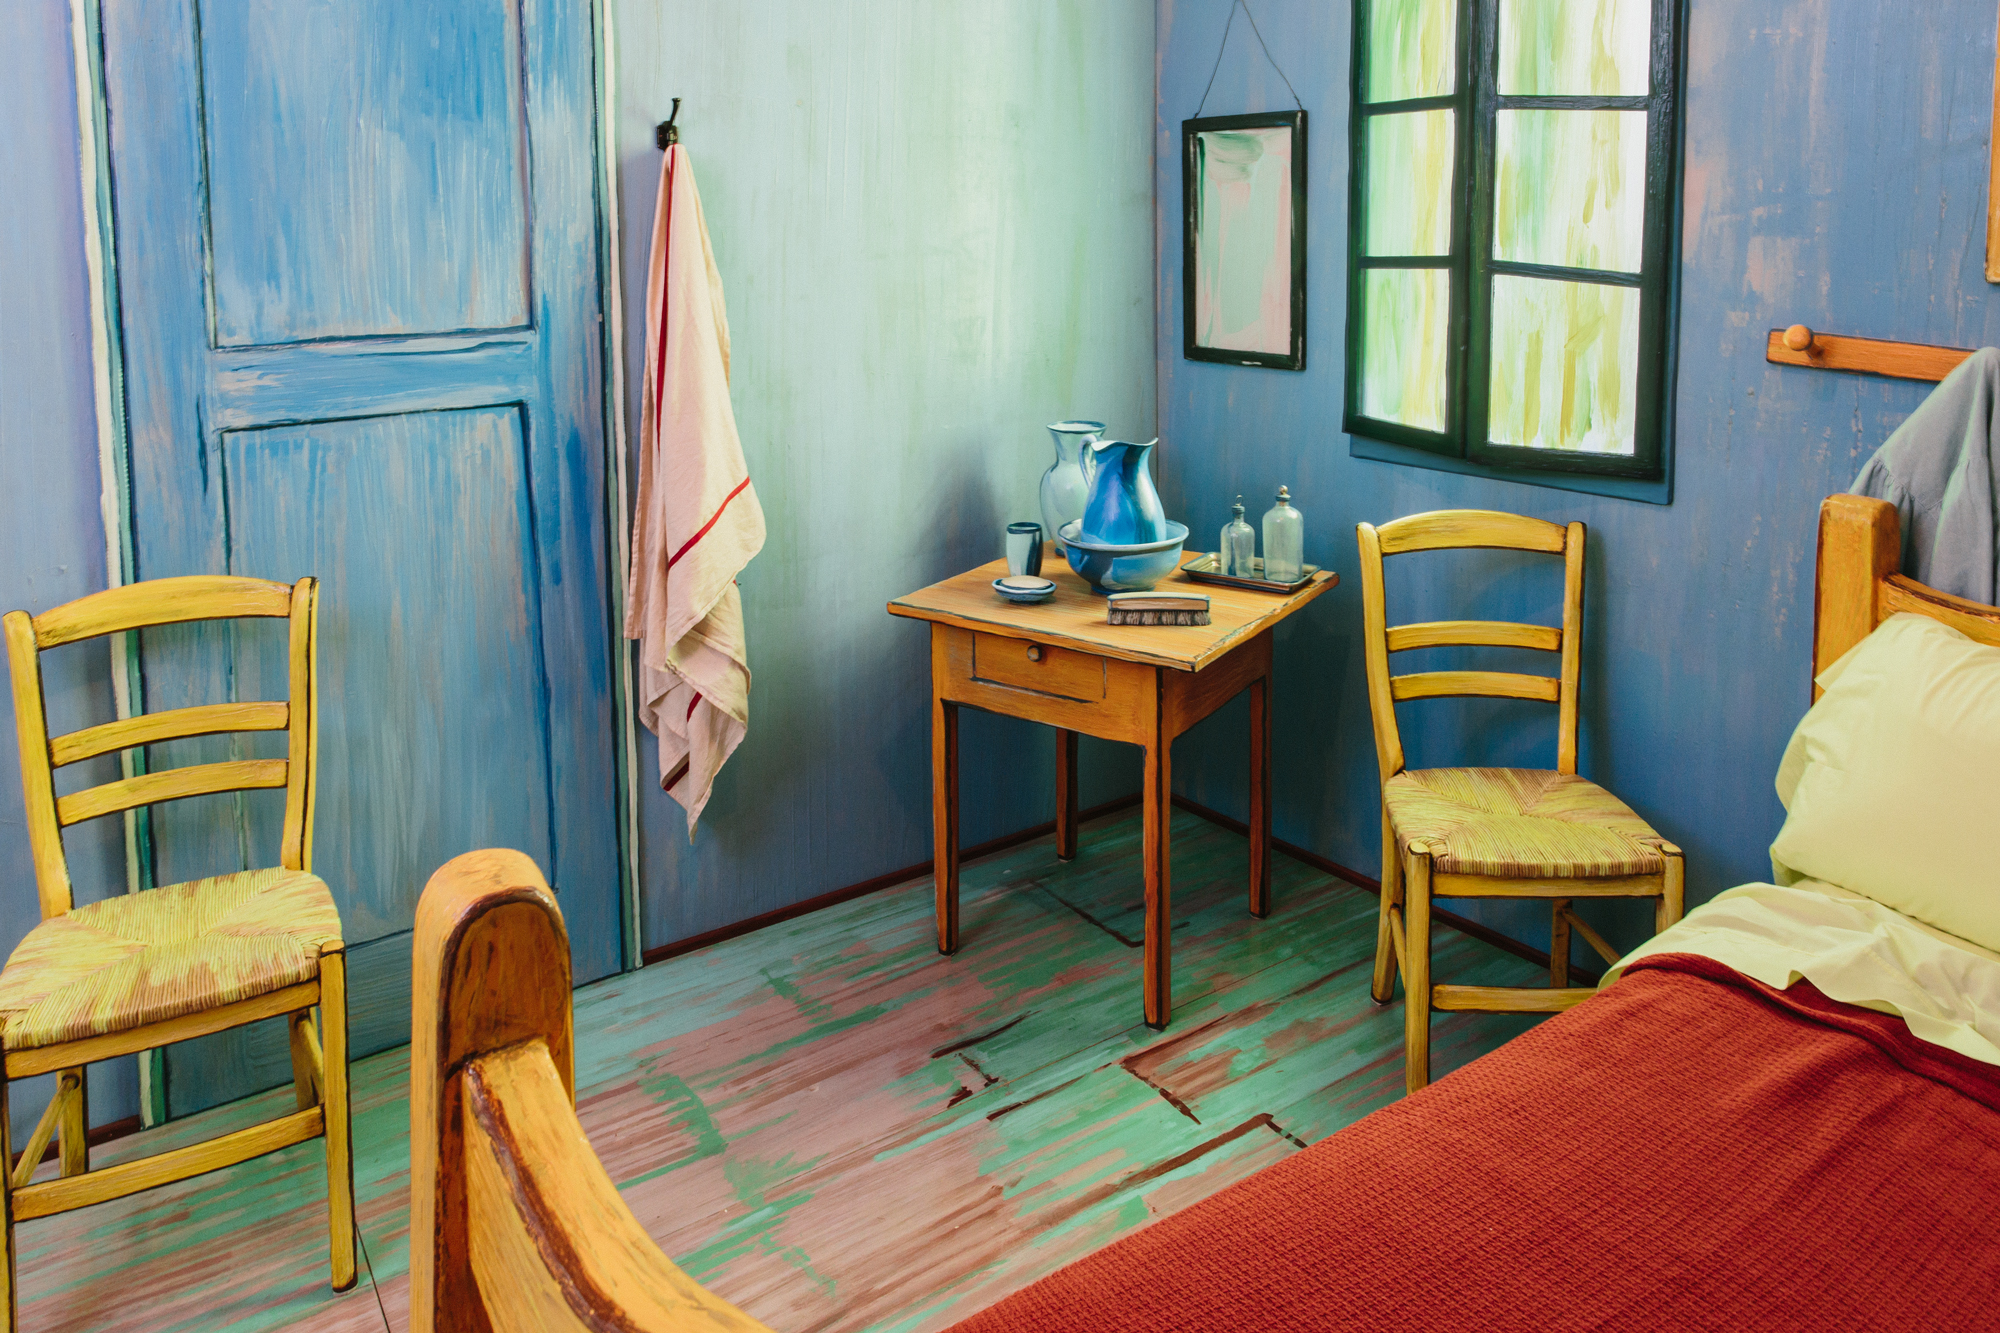 Stay in a life-size replica of a Van Gogh painting for $10 a night ...